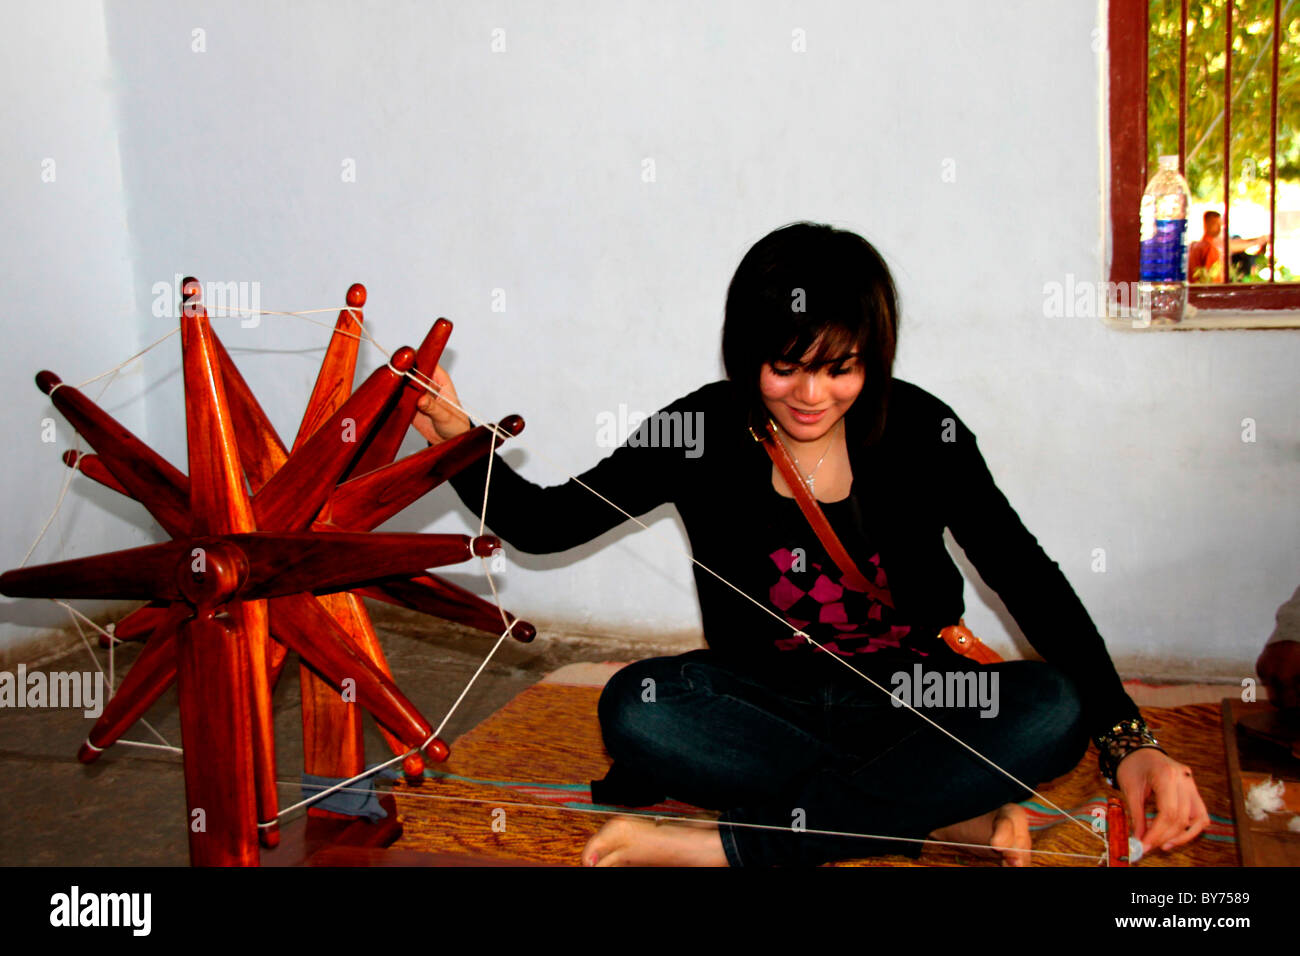 A girl using spinning wheel Stock Photo